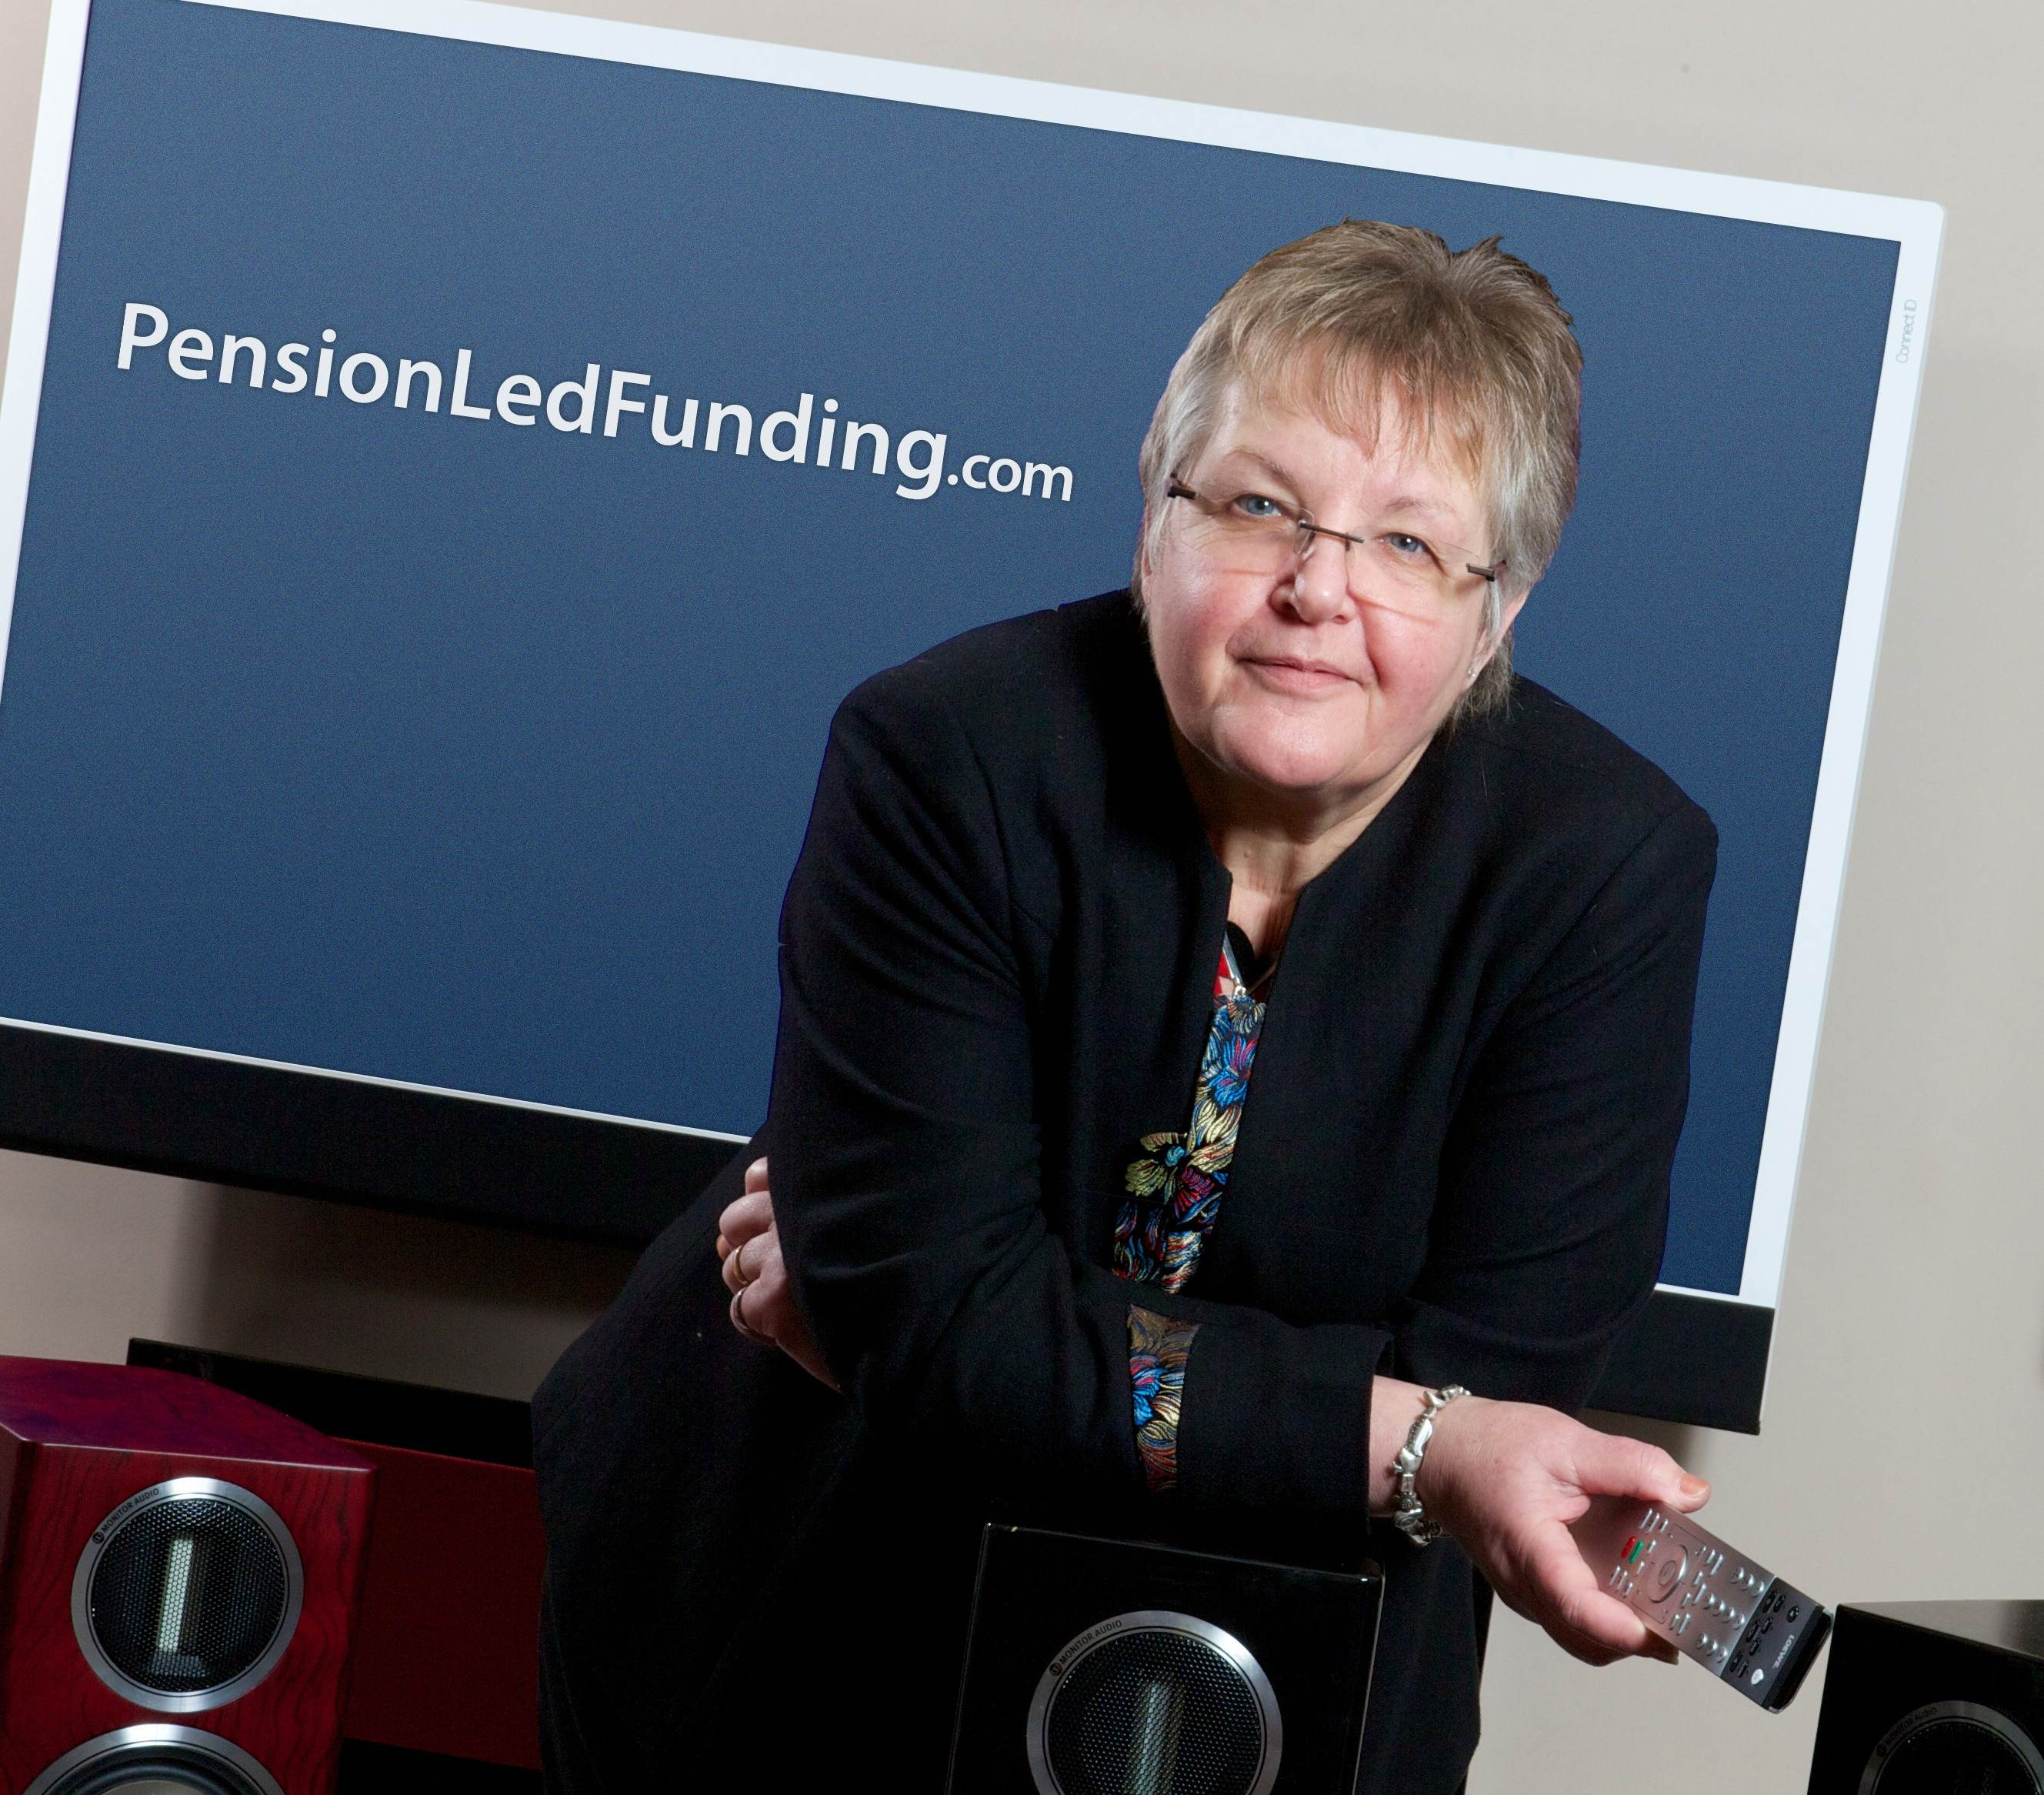 Pension-led funding gains momentum as source of alternative finance